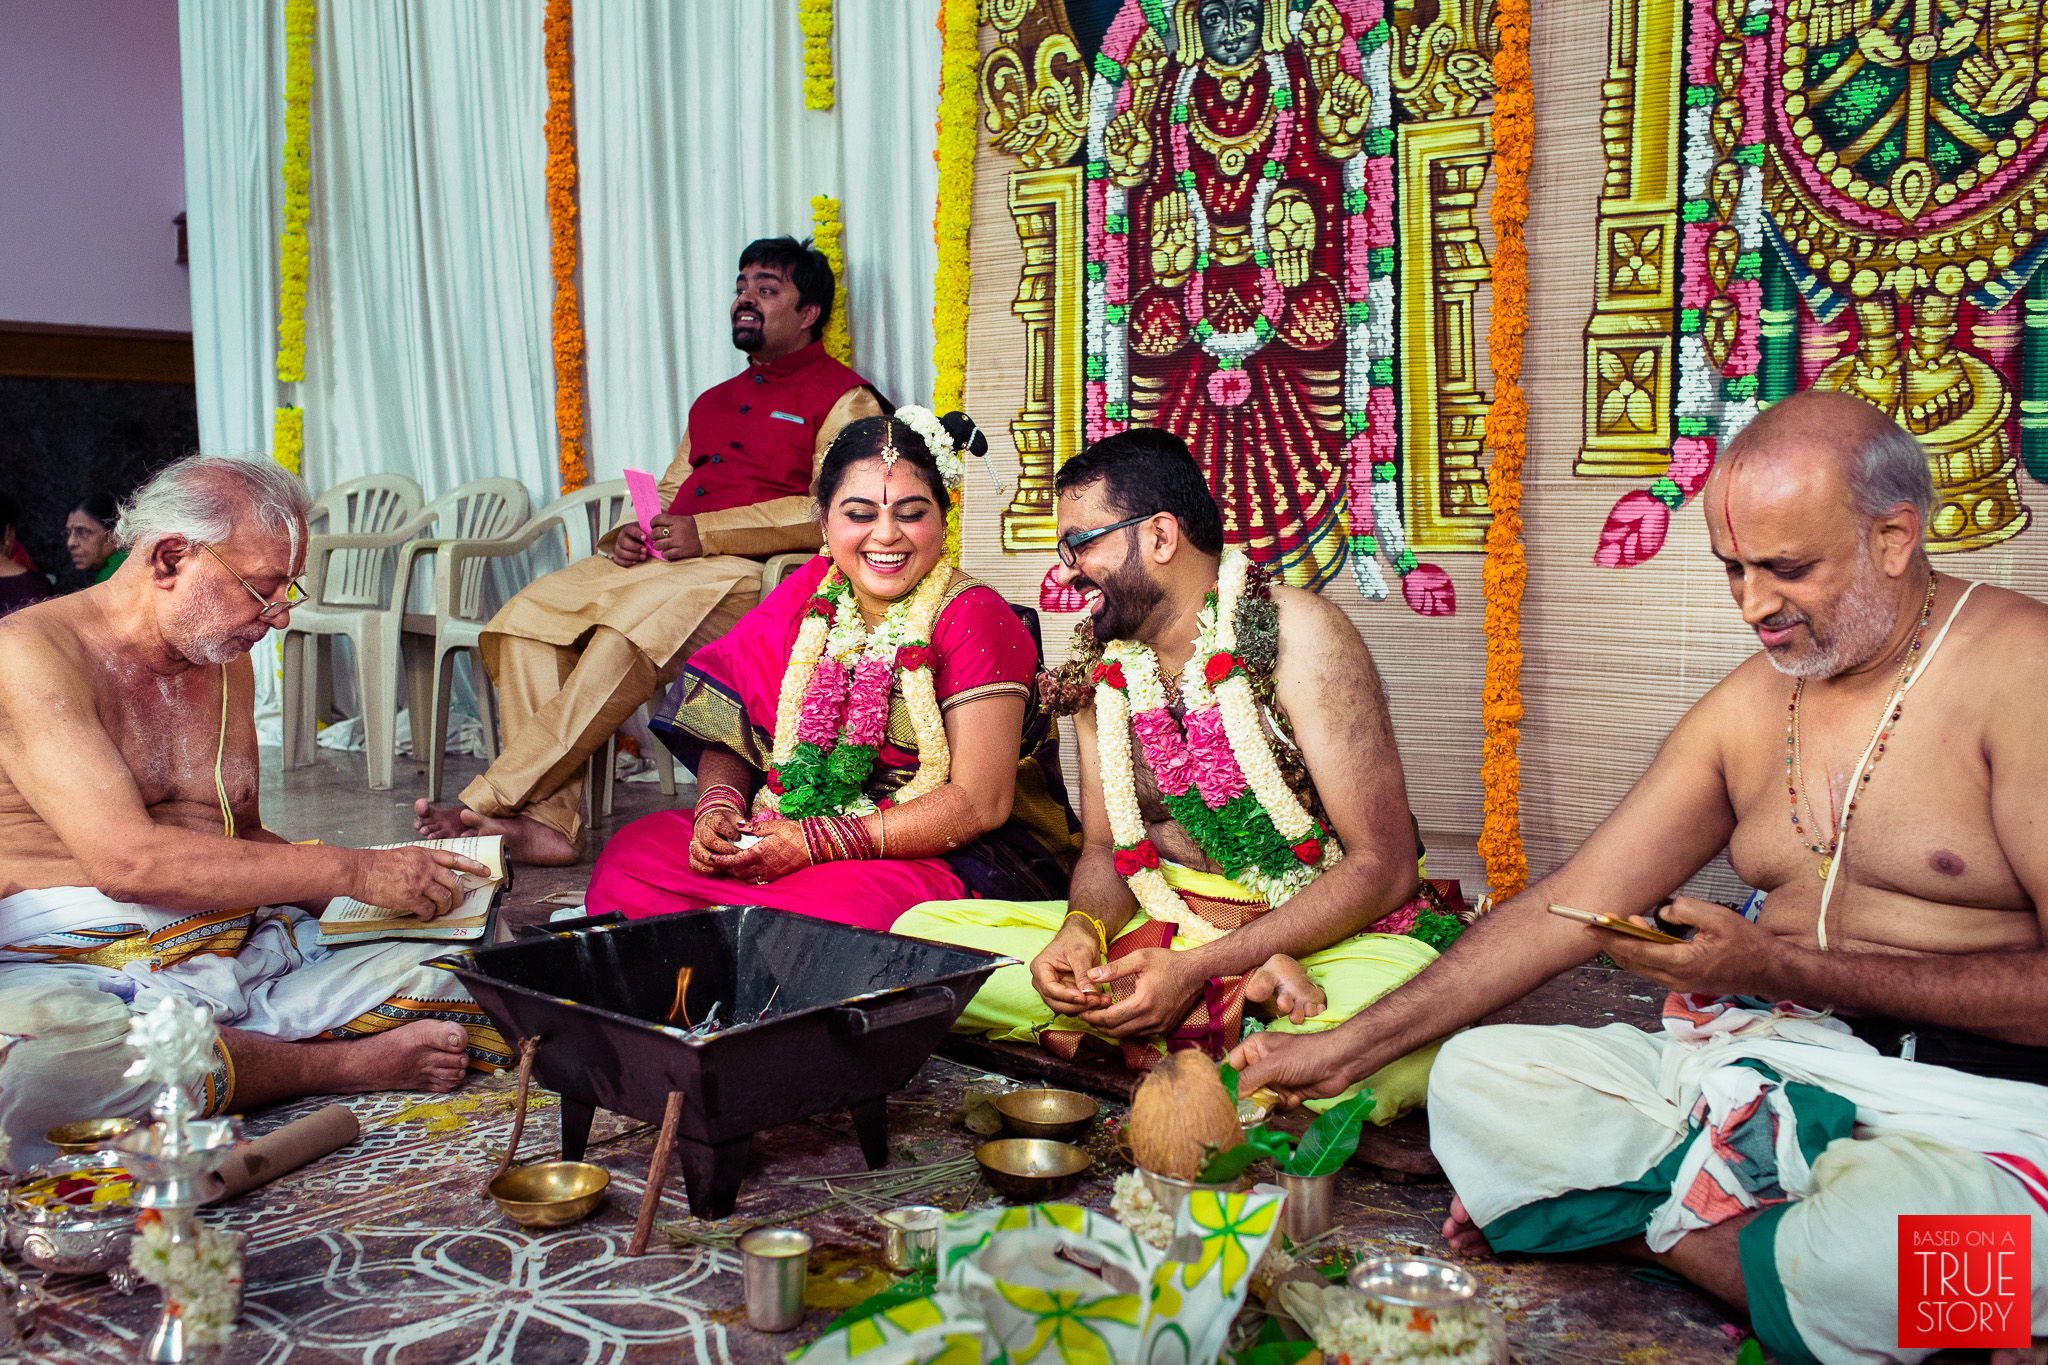 tambrahm-candid-wedding-photographer-bangalore-0053.jpg